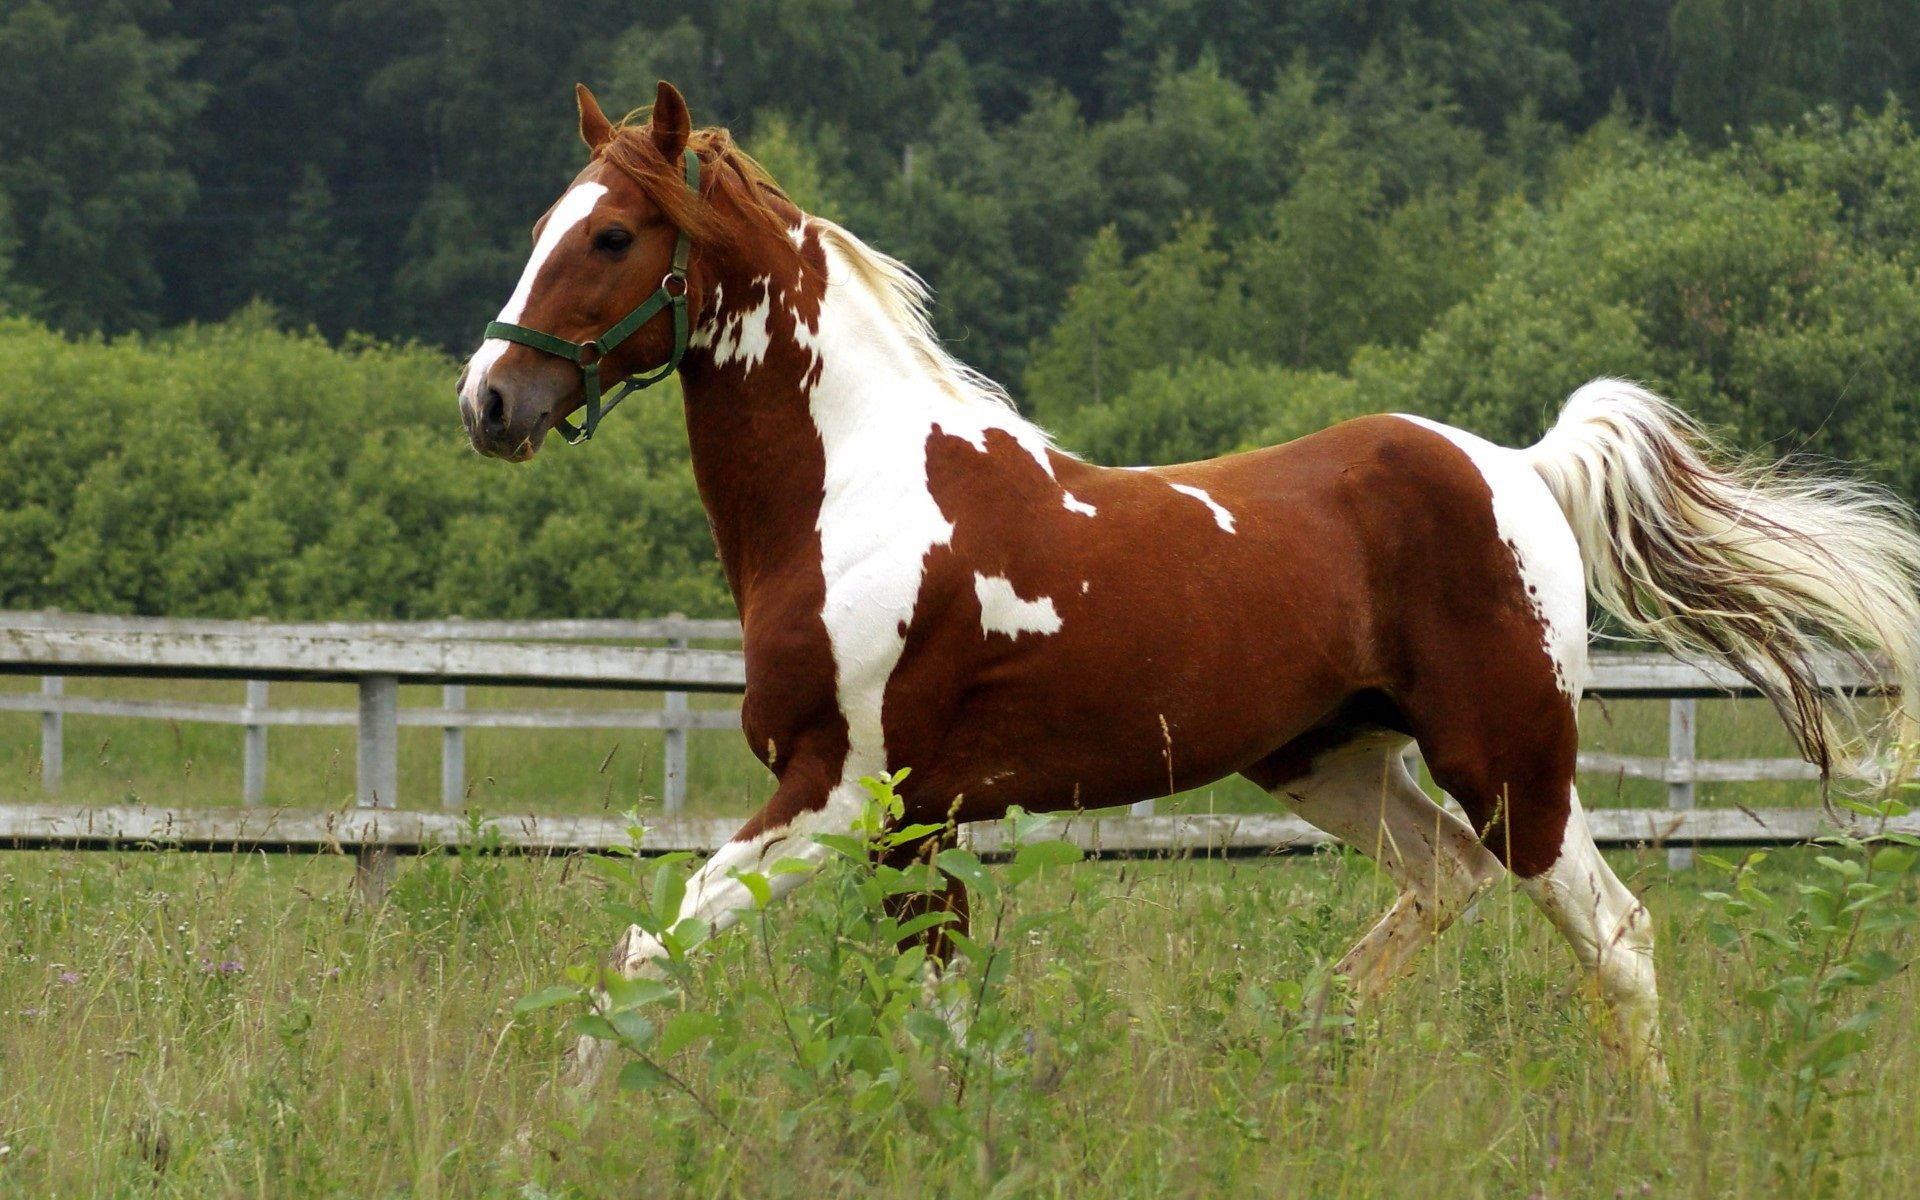 Download Horses 6713 1600x1200 Px High Resolution Wallpaper Horse Wallpaper Horses Paint Horses For Sale